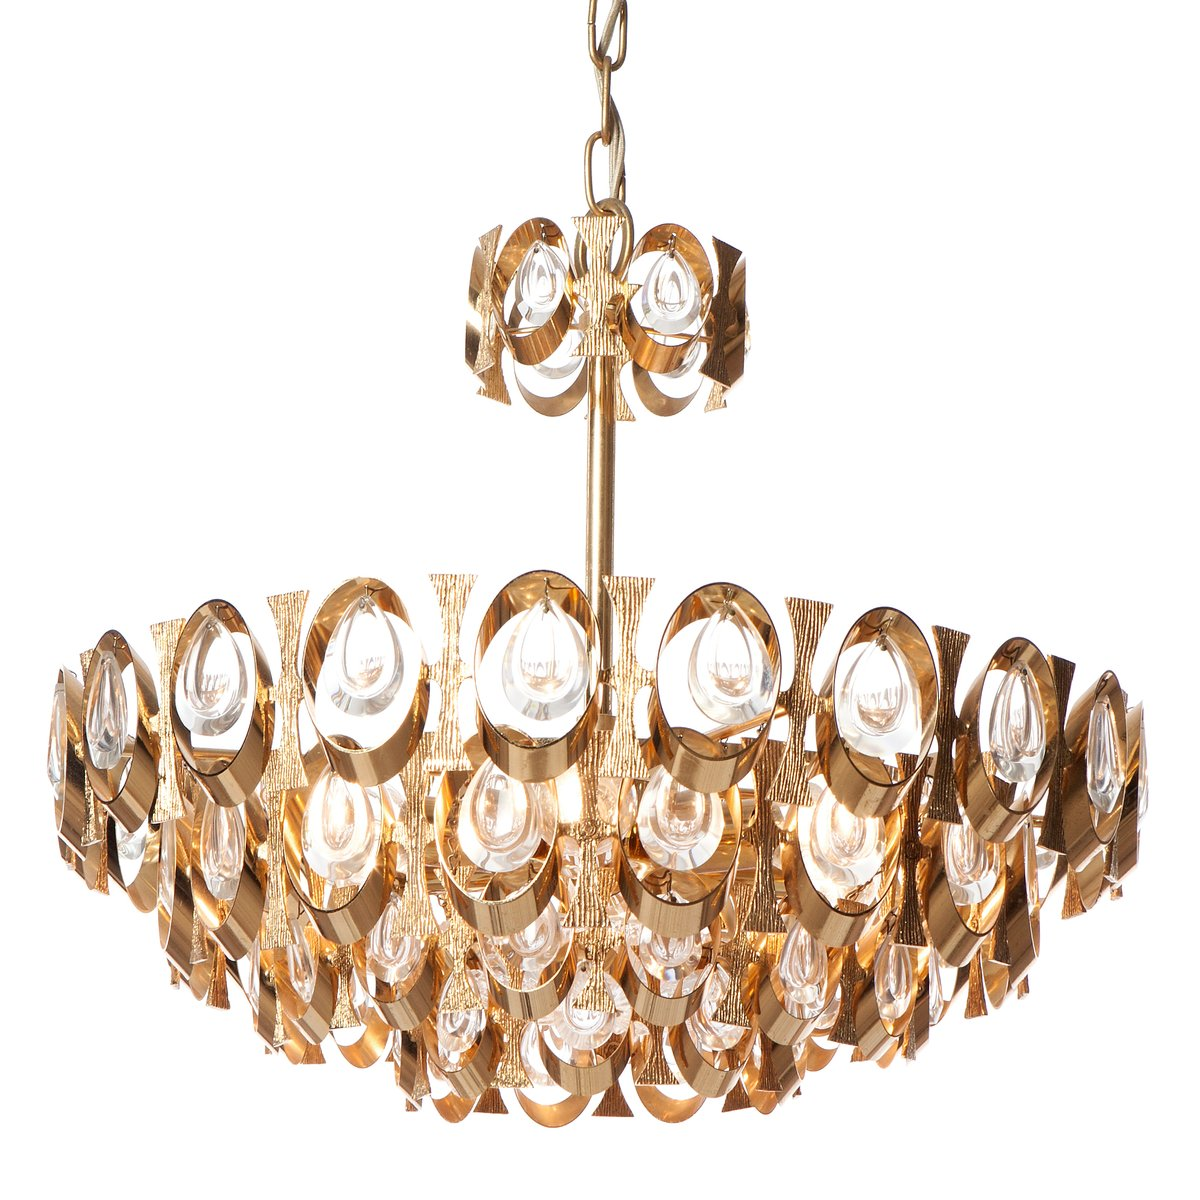 Six light crystal glass and gilt brass chandelier by sciolari for six light crystal glass and gilt brass chandelier by sciolari for palwa aloadofball